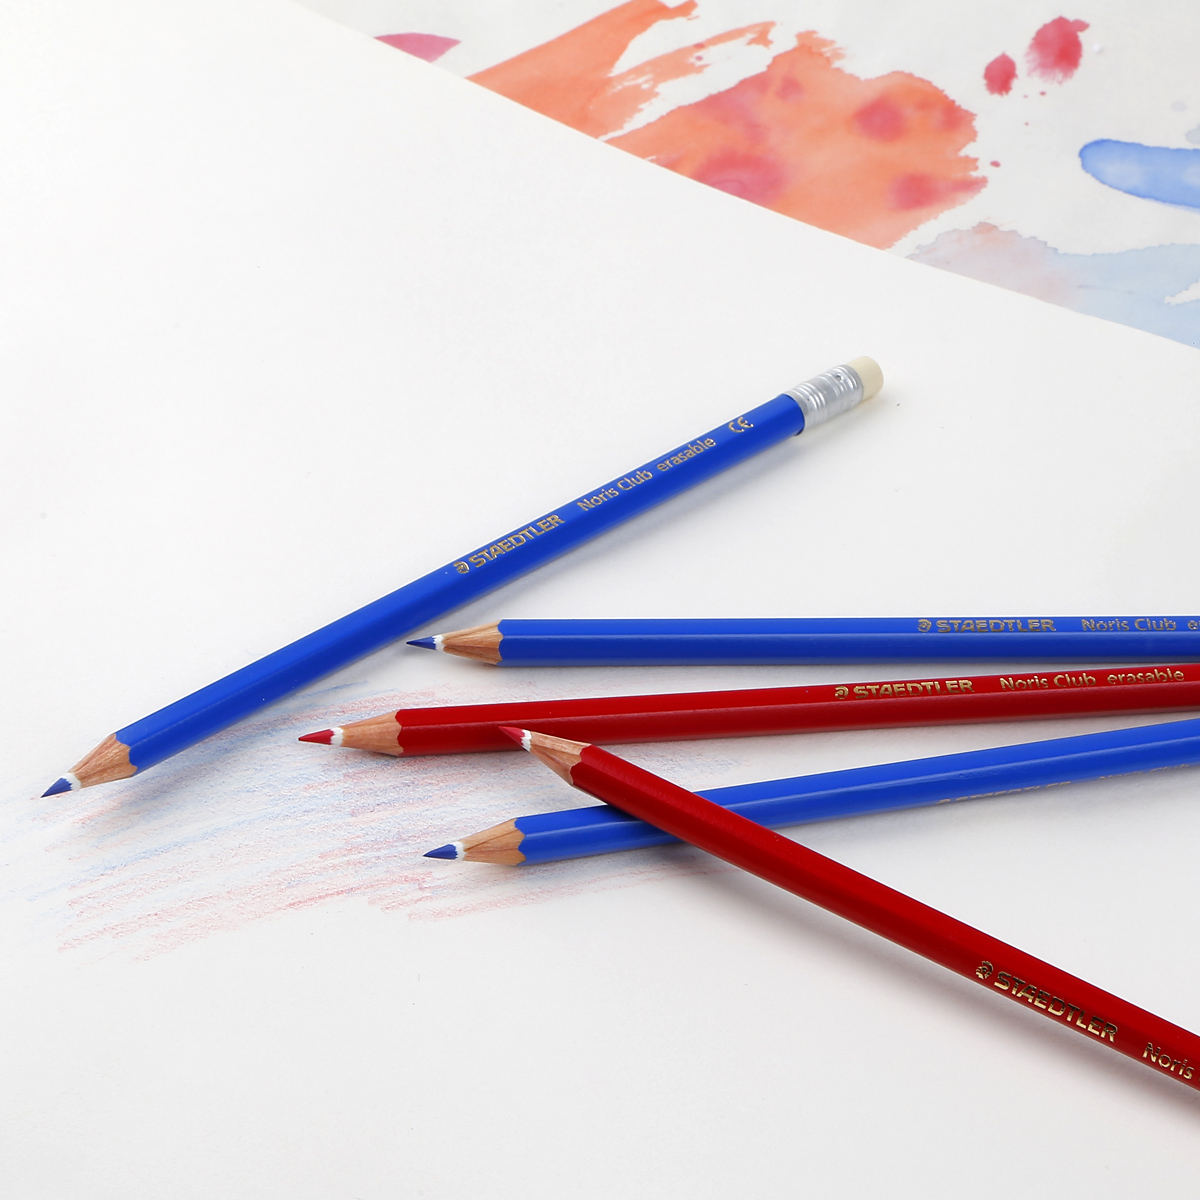 German staedtler staedtler | drawing | graffiti | anime erasable colored pencil red and blue pencil